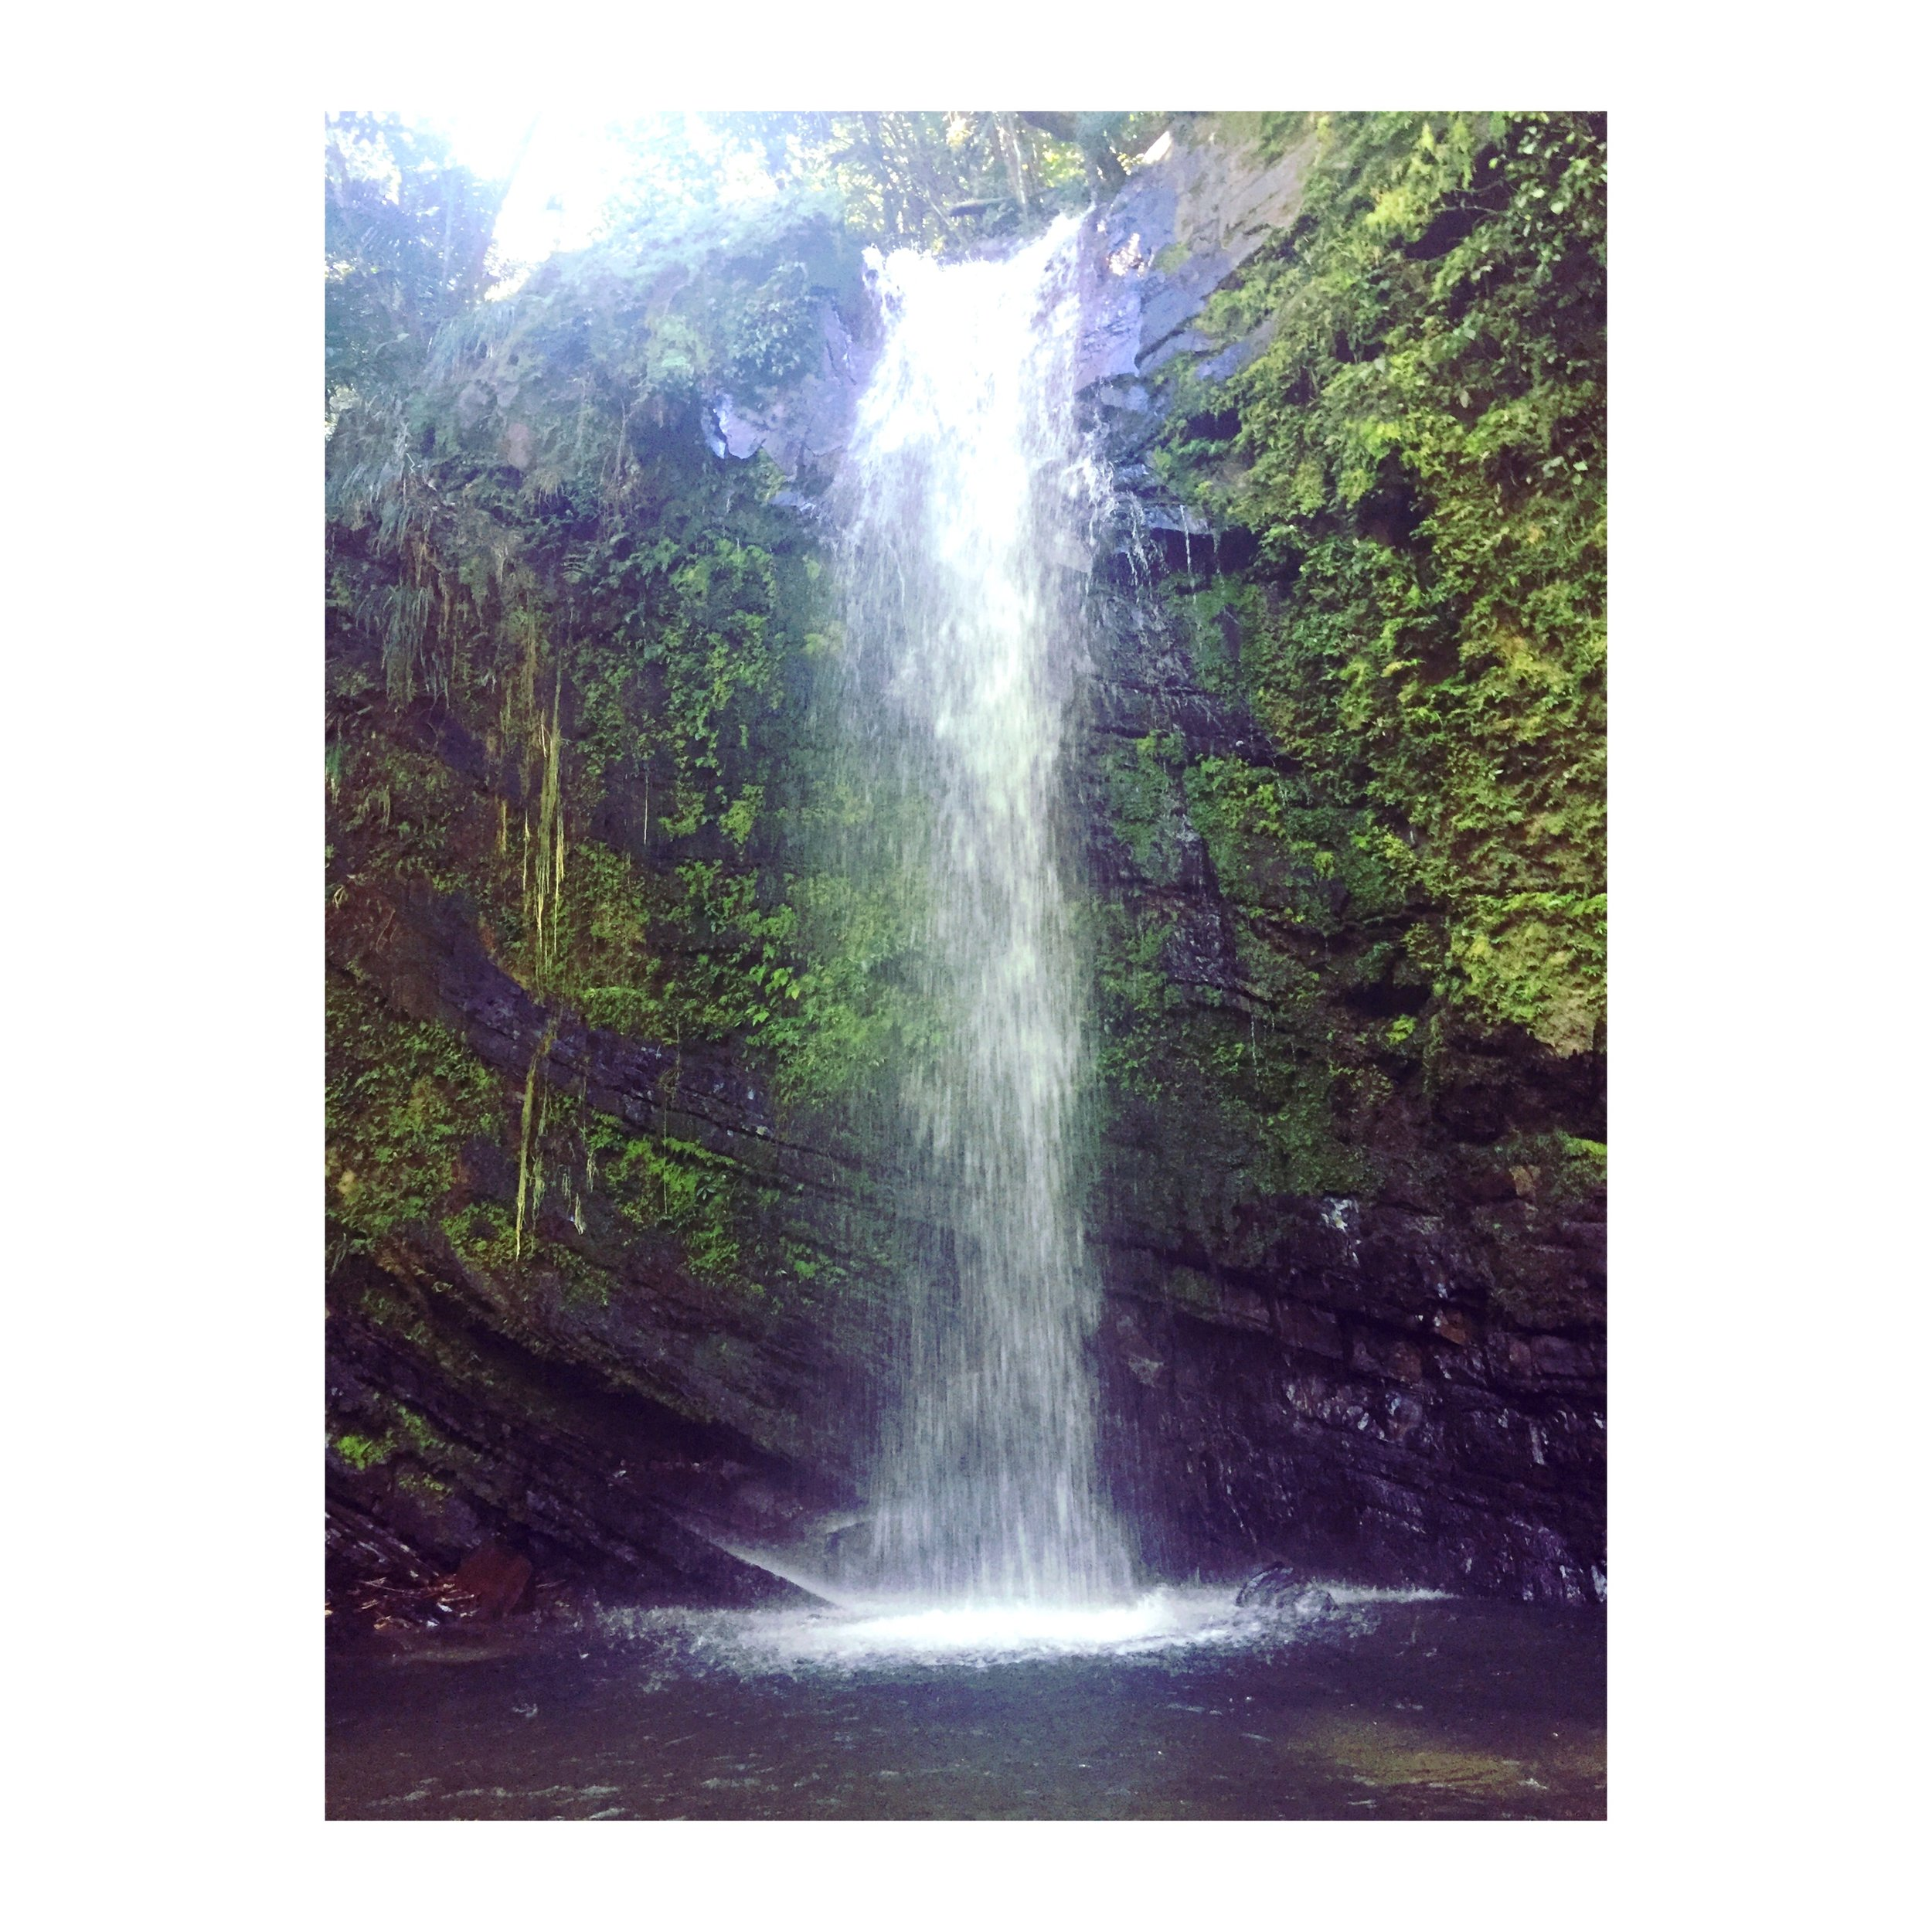 After we finished our hike, Charlito took us to La Coca Waterfalls, which was absolutely gorgeous.The water was refreshing after being covered in mud from climbing trails.The water was so clean and crisp.After we dried up, my hair and skin felt like silk.